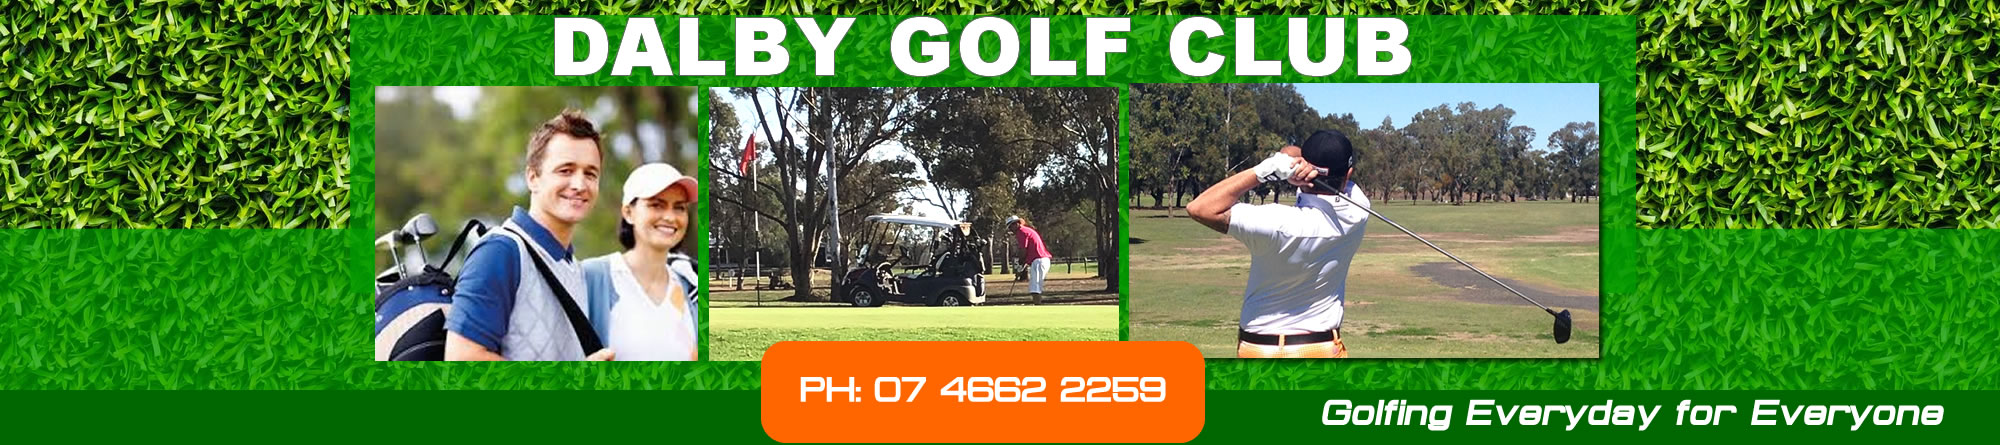 Get Into Golf at Dalby